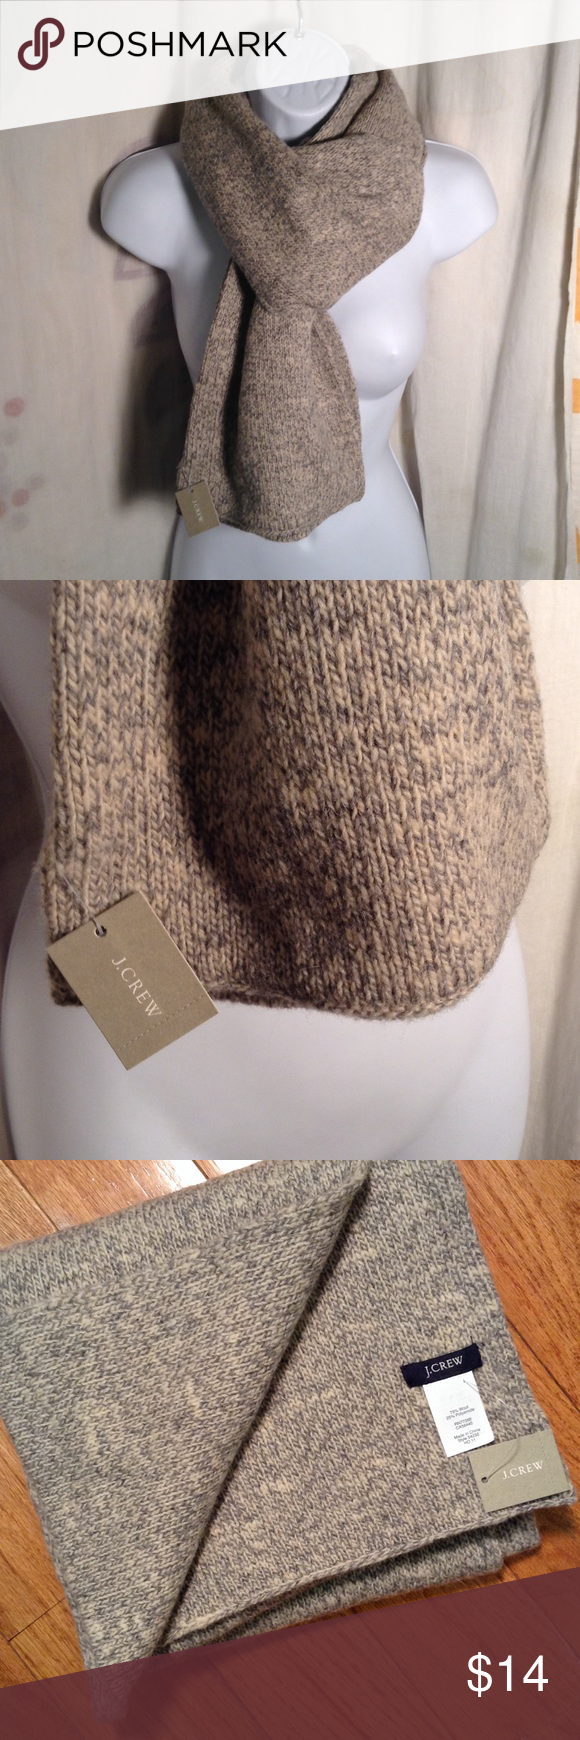 NWT J.Crew Scarf Heathered Gray Wool New With Tag. J.Crew Scarf J. Crew Accessories Scarves & Wraps